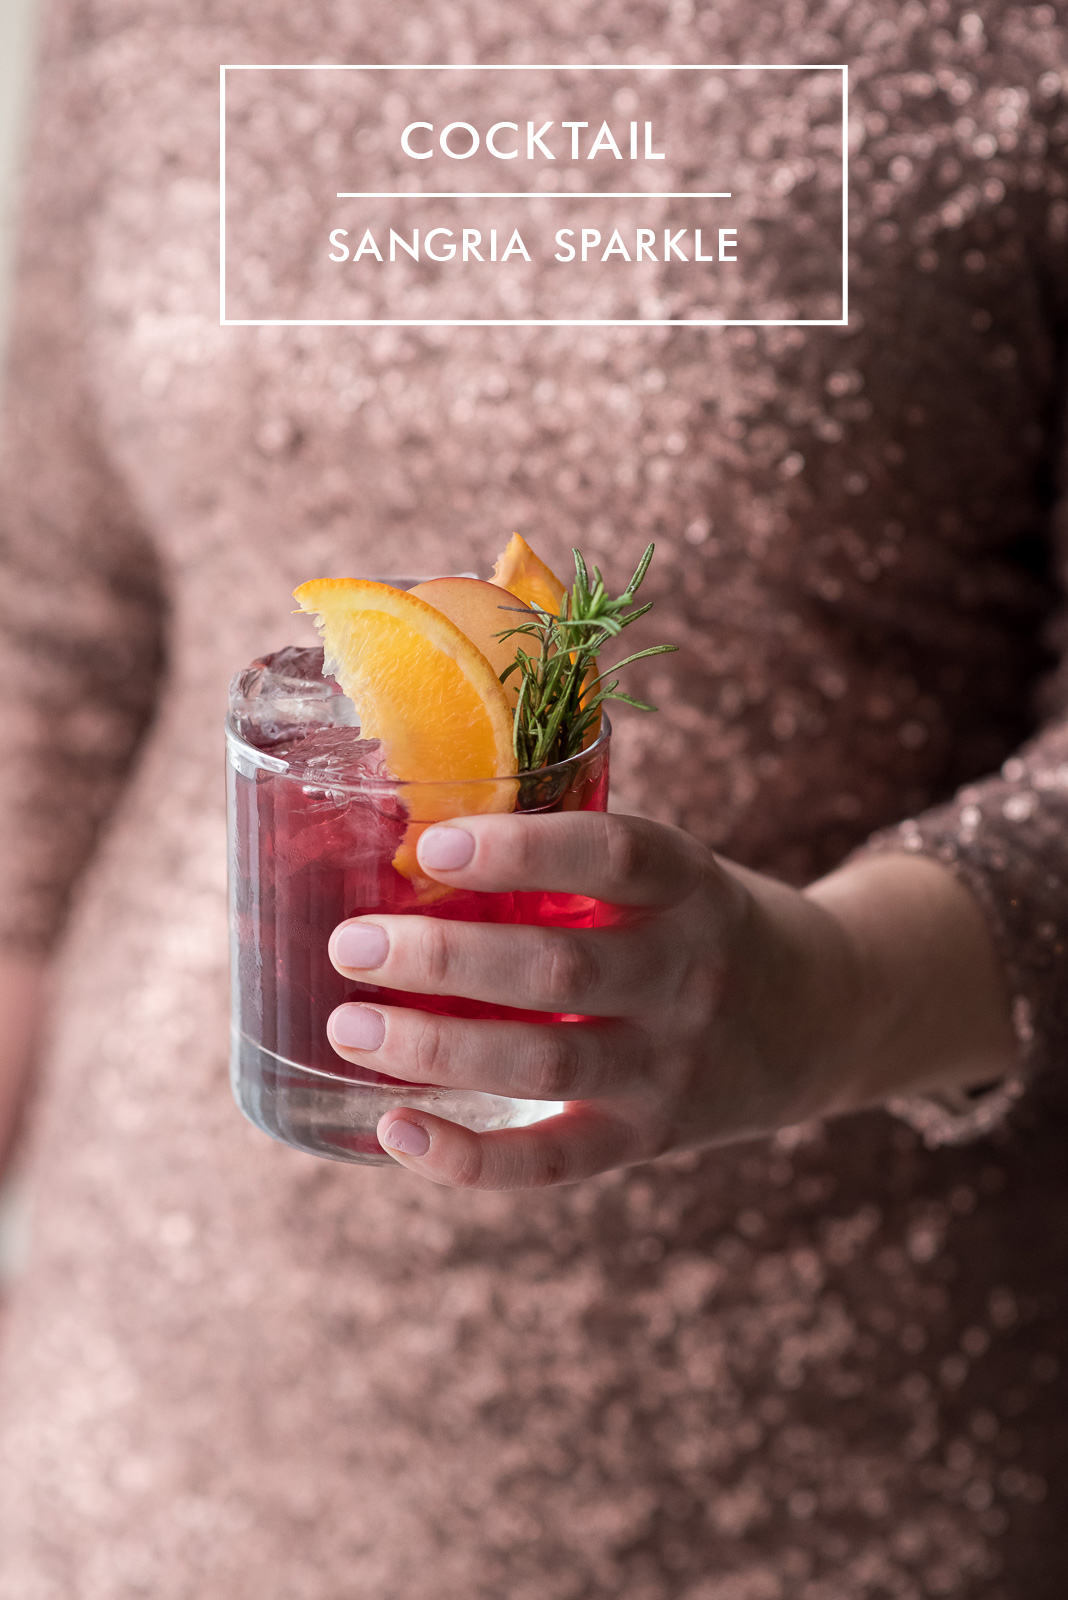 Contemporary Classic Christmas Cocktails - Sparkling Sangria (4A)